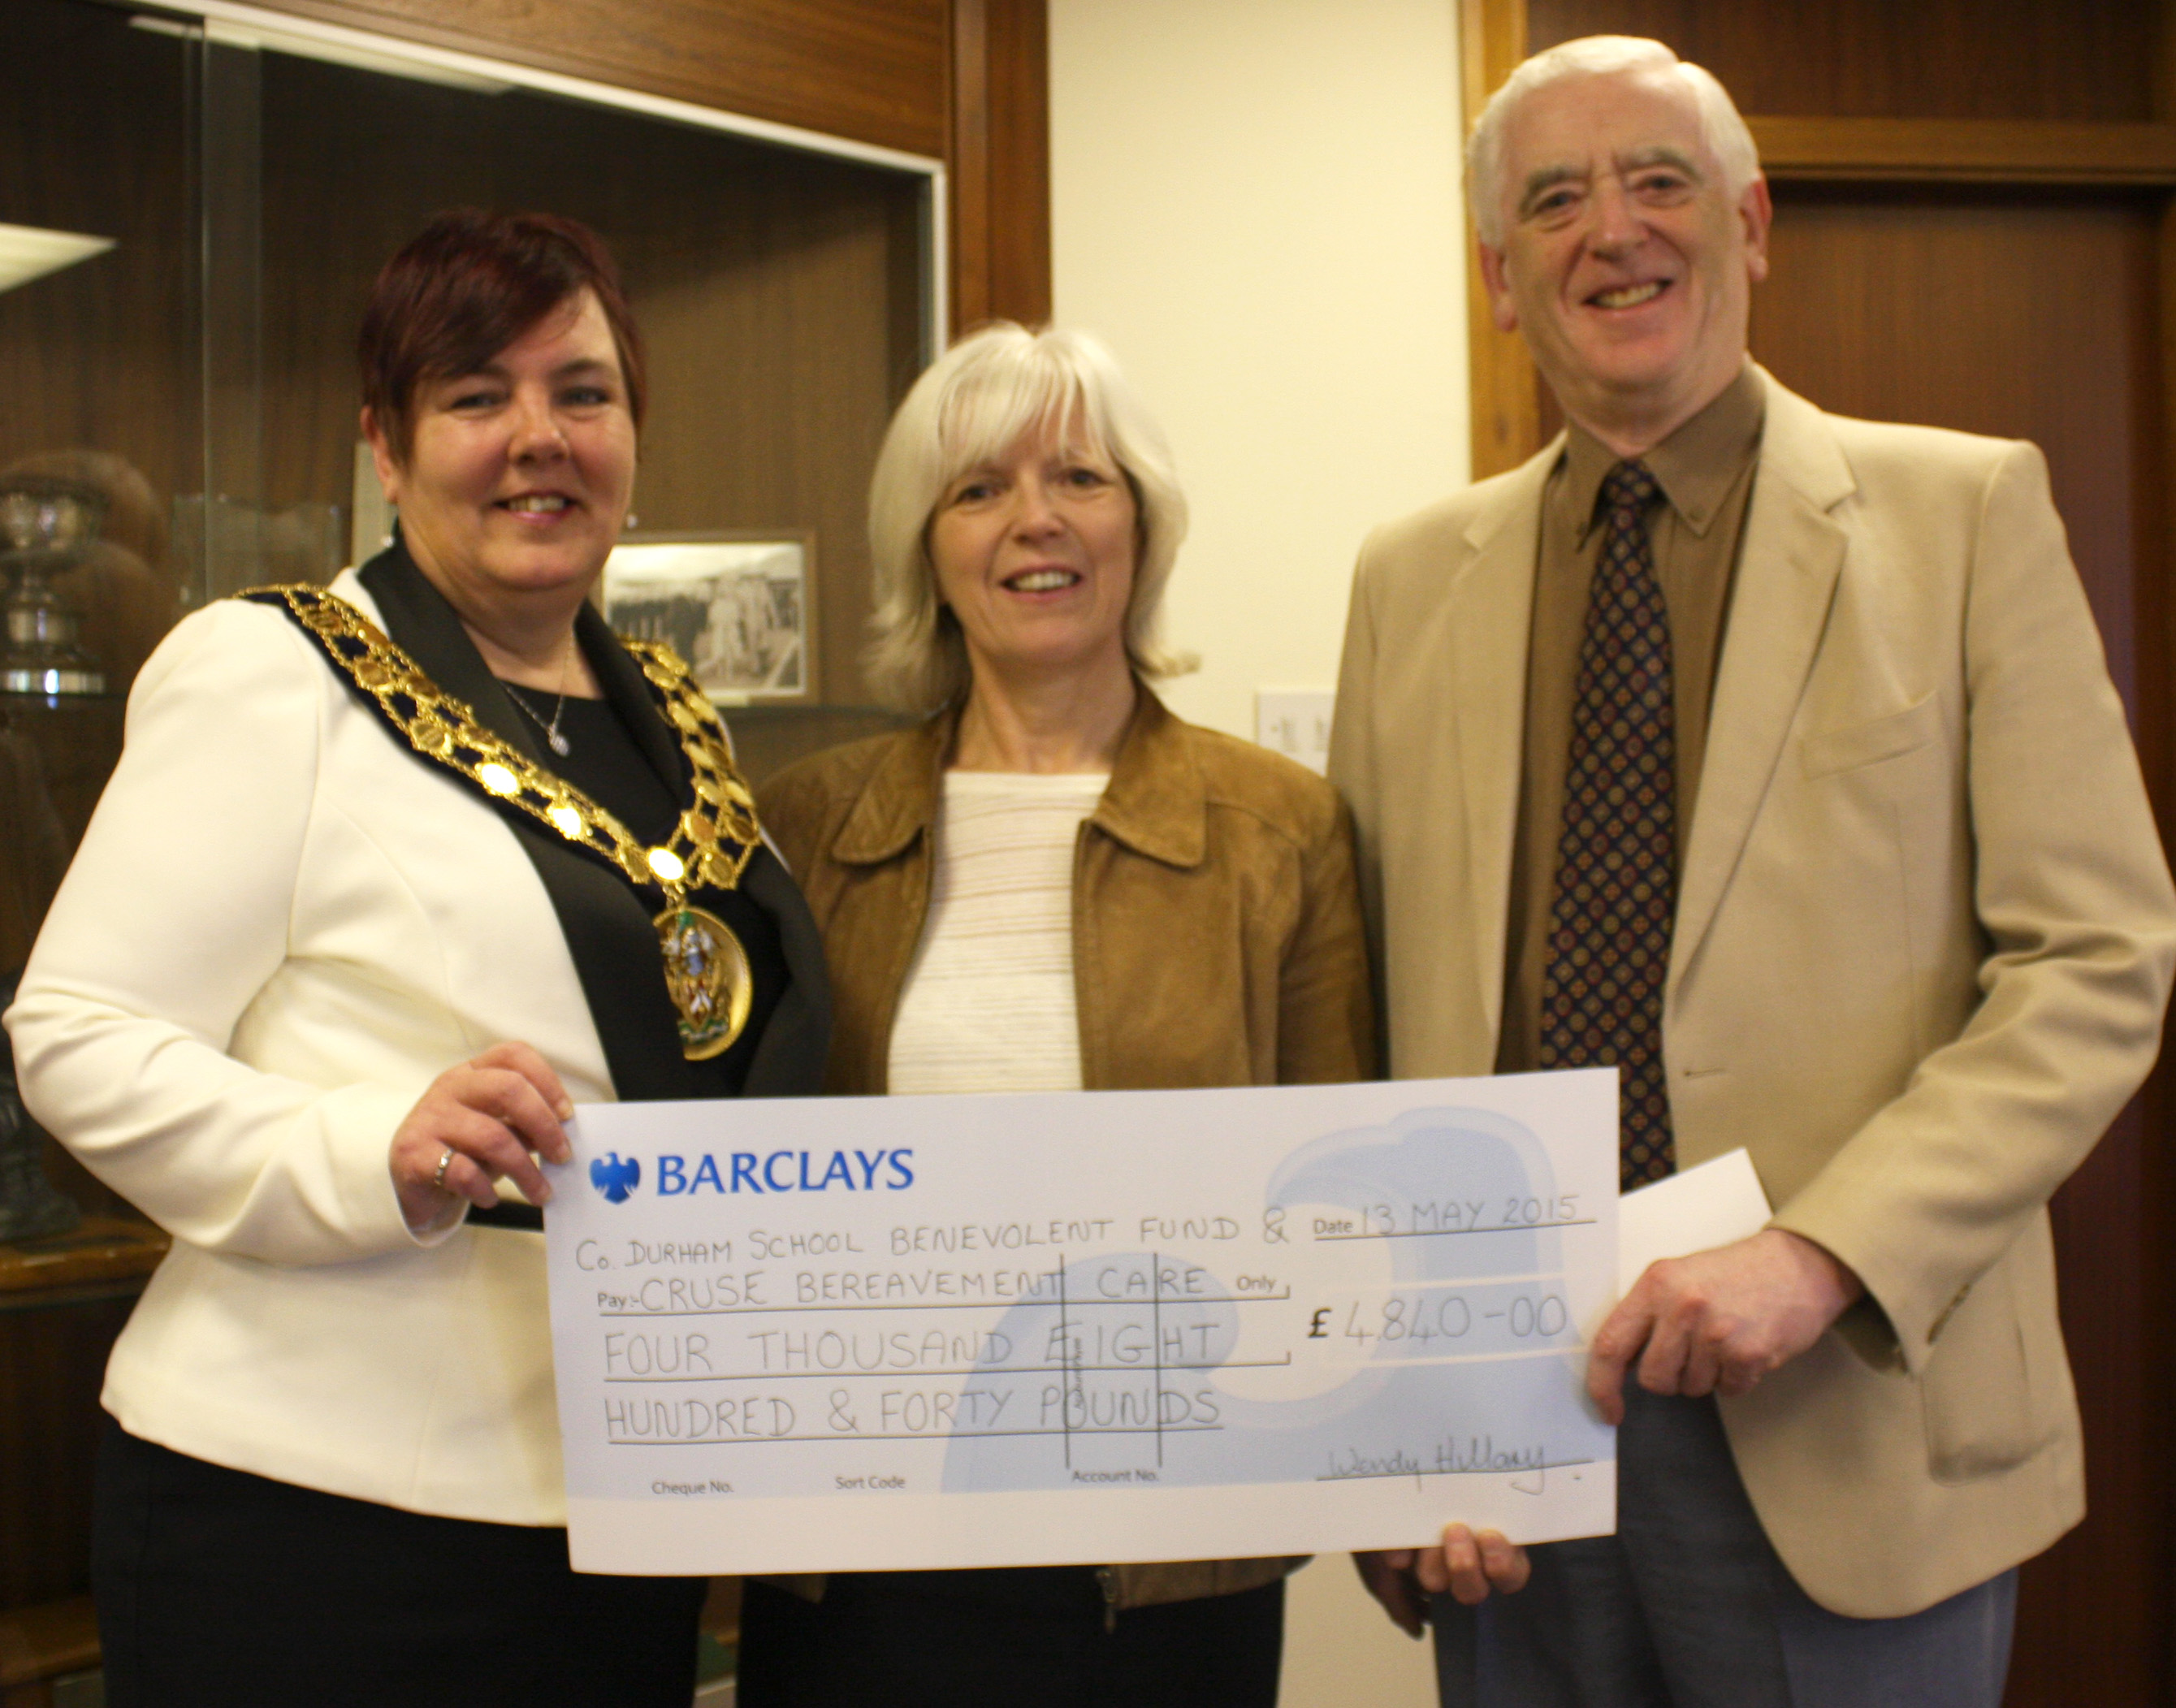 Past Mayor's Charity Events Raised £4,840